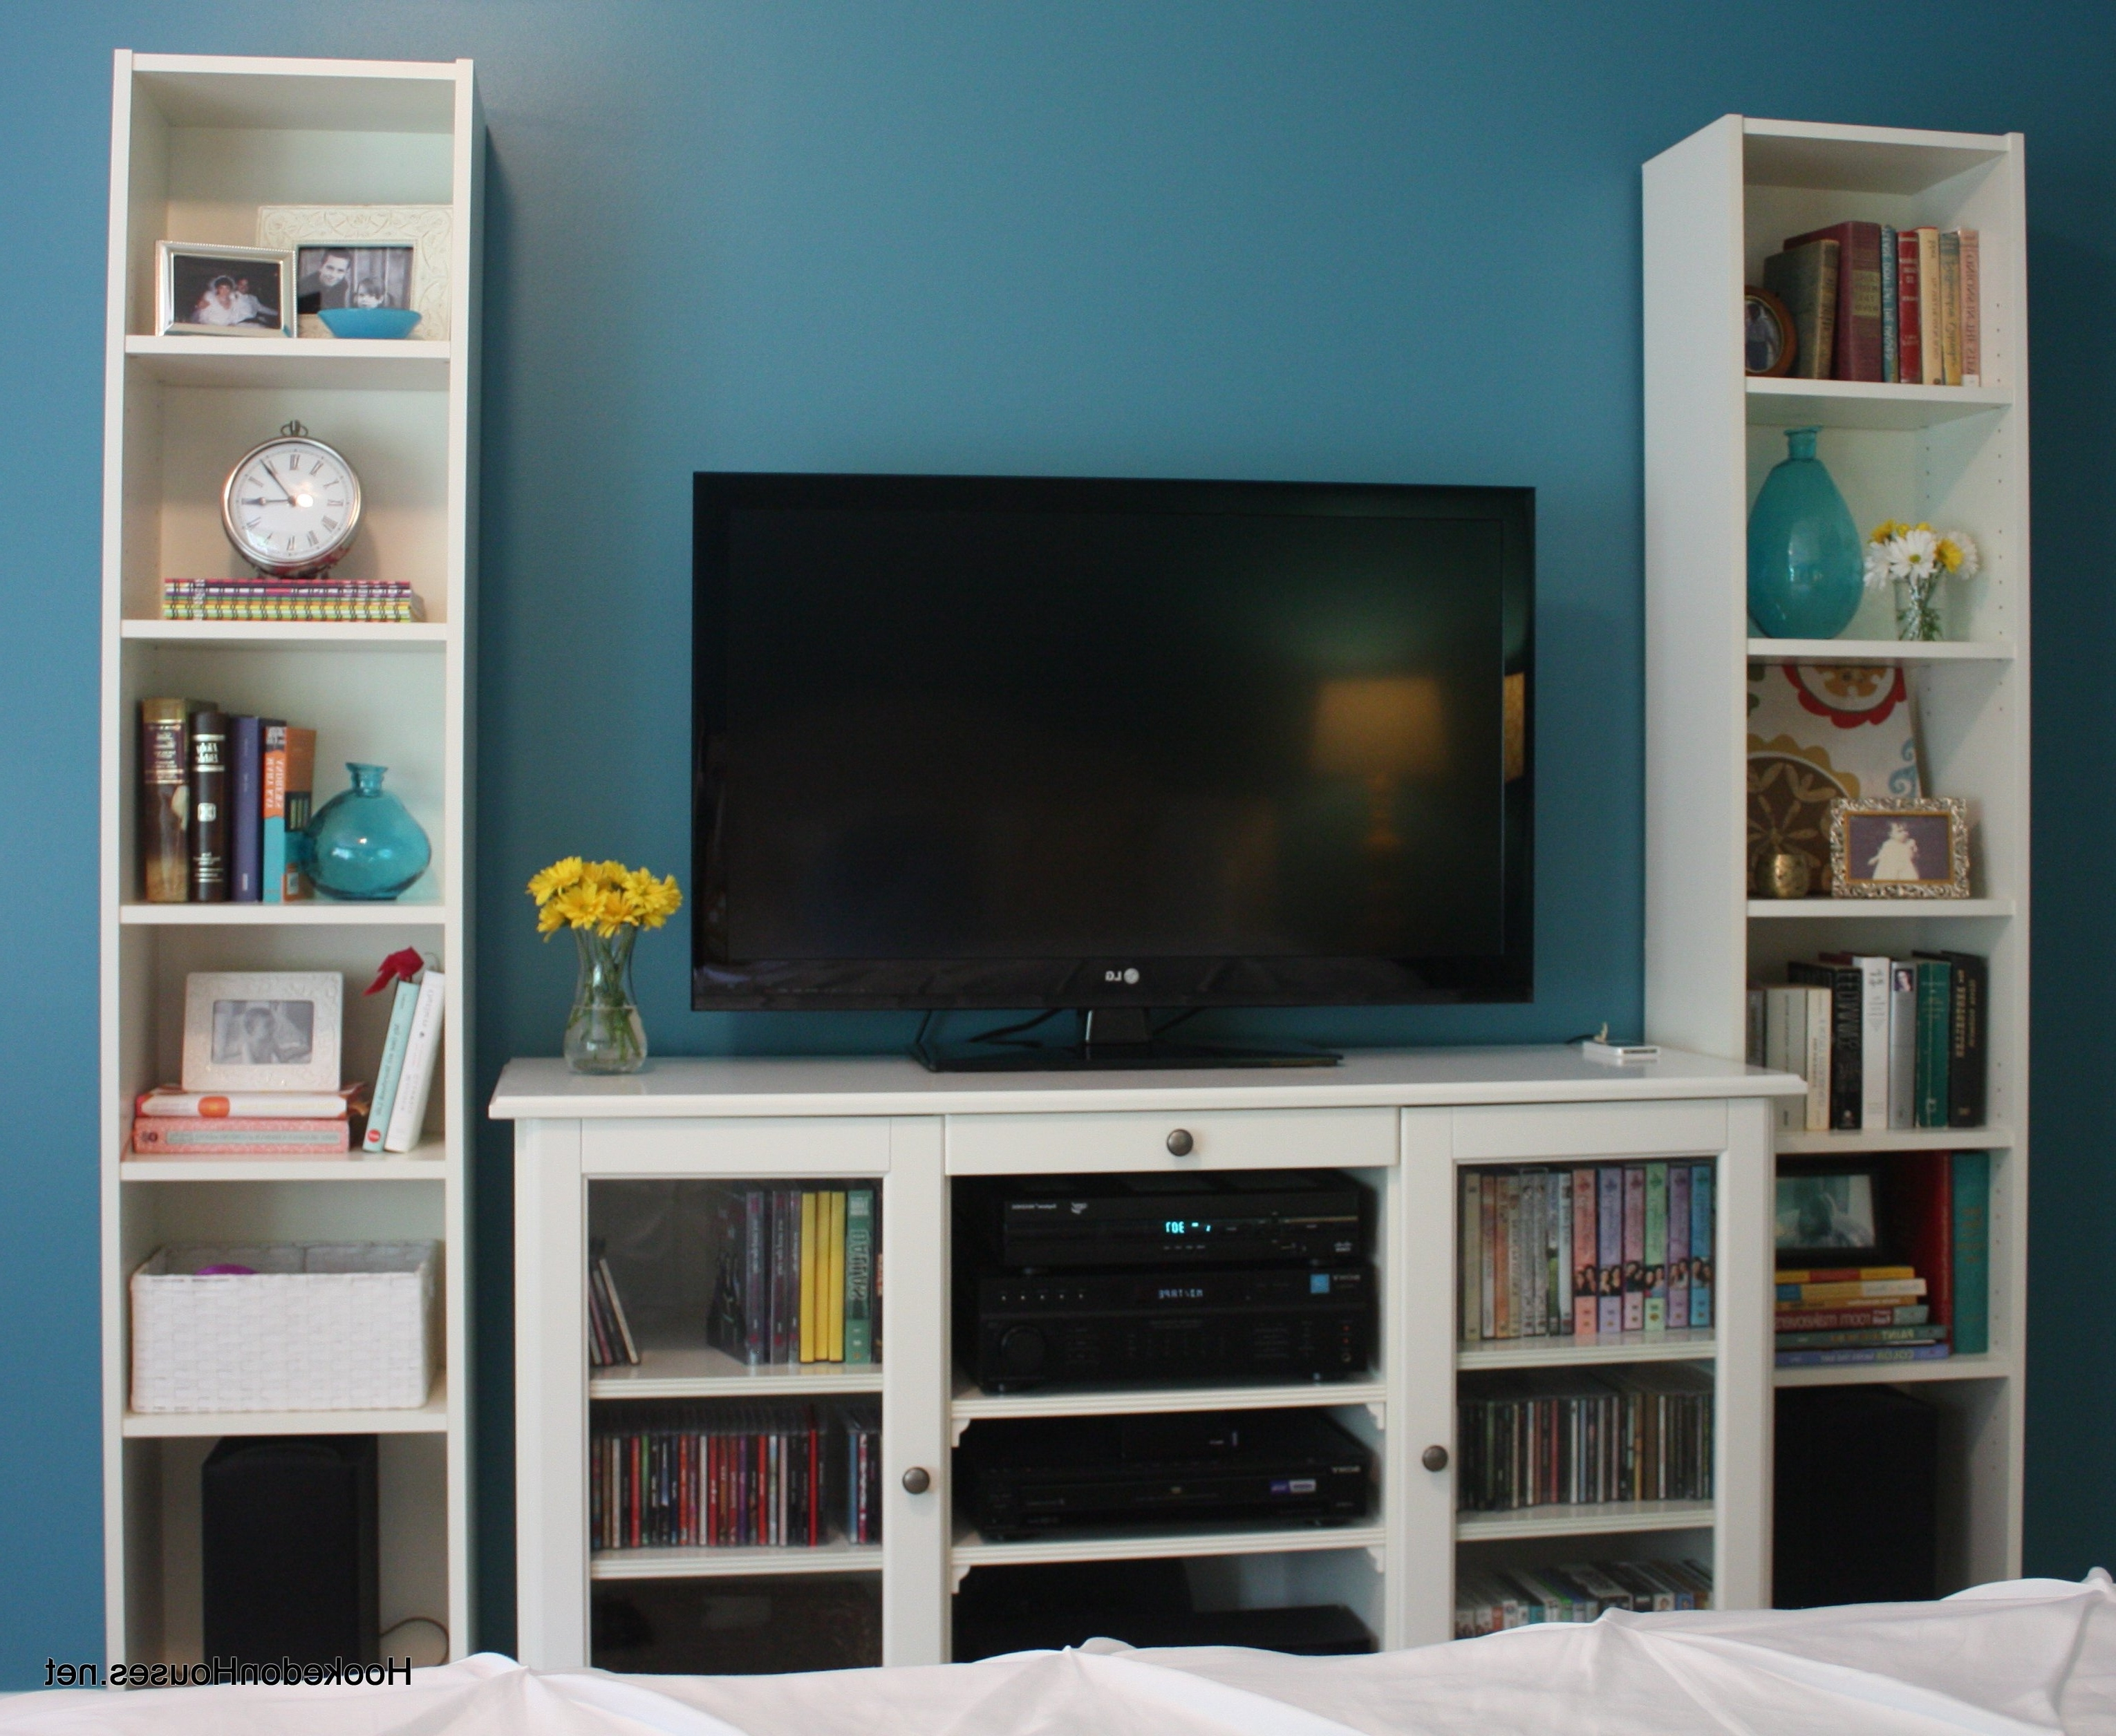 Newest Wall Units: Amazing Bookshelf Tv Stand Tv Stands With Shelves For Bookcases With Tv Unit (View 8 of 15)